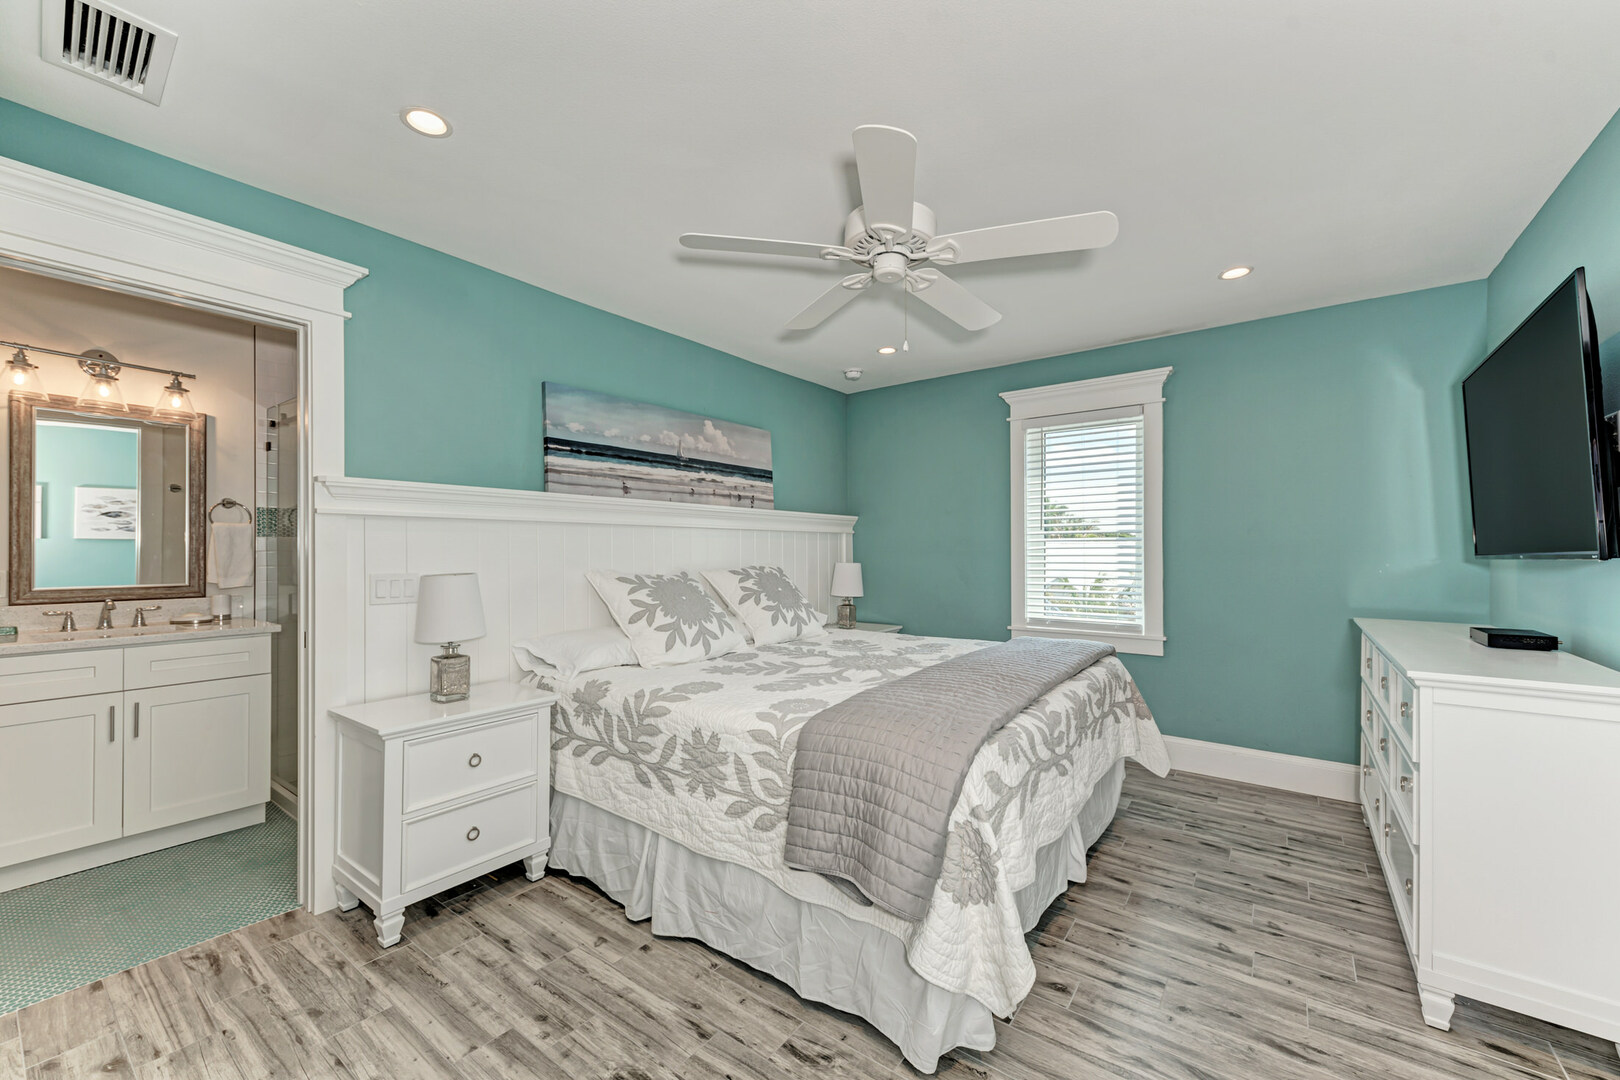 4 Sandpipers 3rd bedroom with ensuite